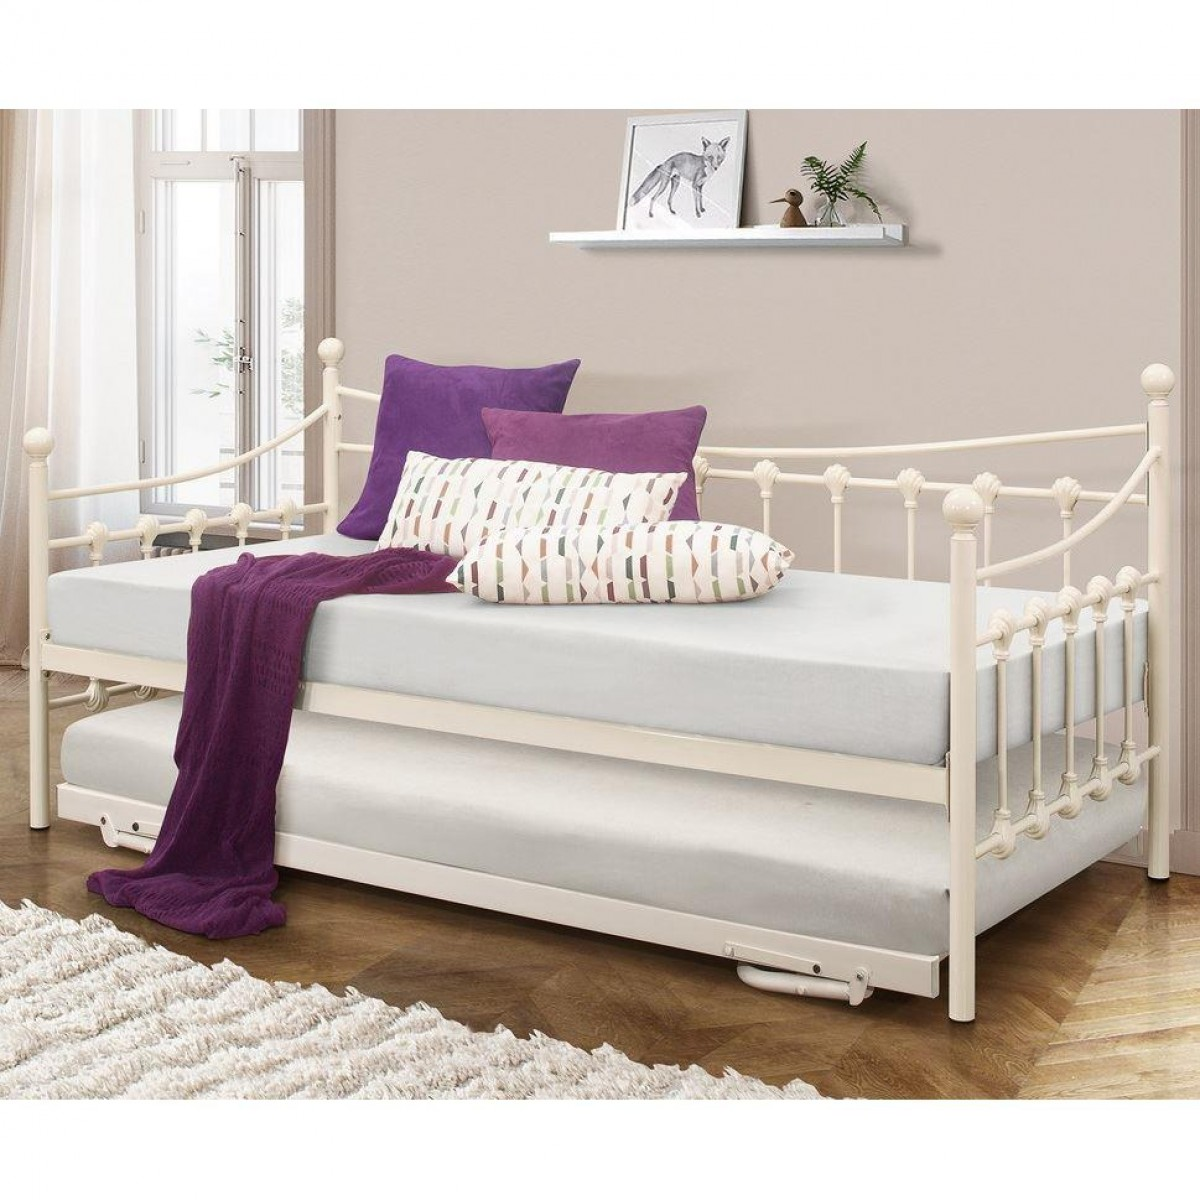 Chantelle Cream Metal Day Bed and Trundle Guest Bed